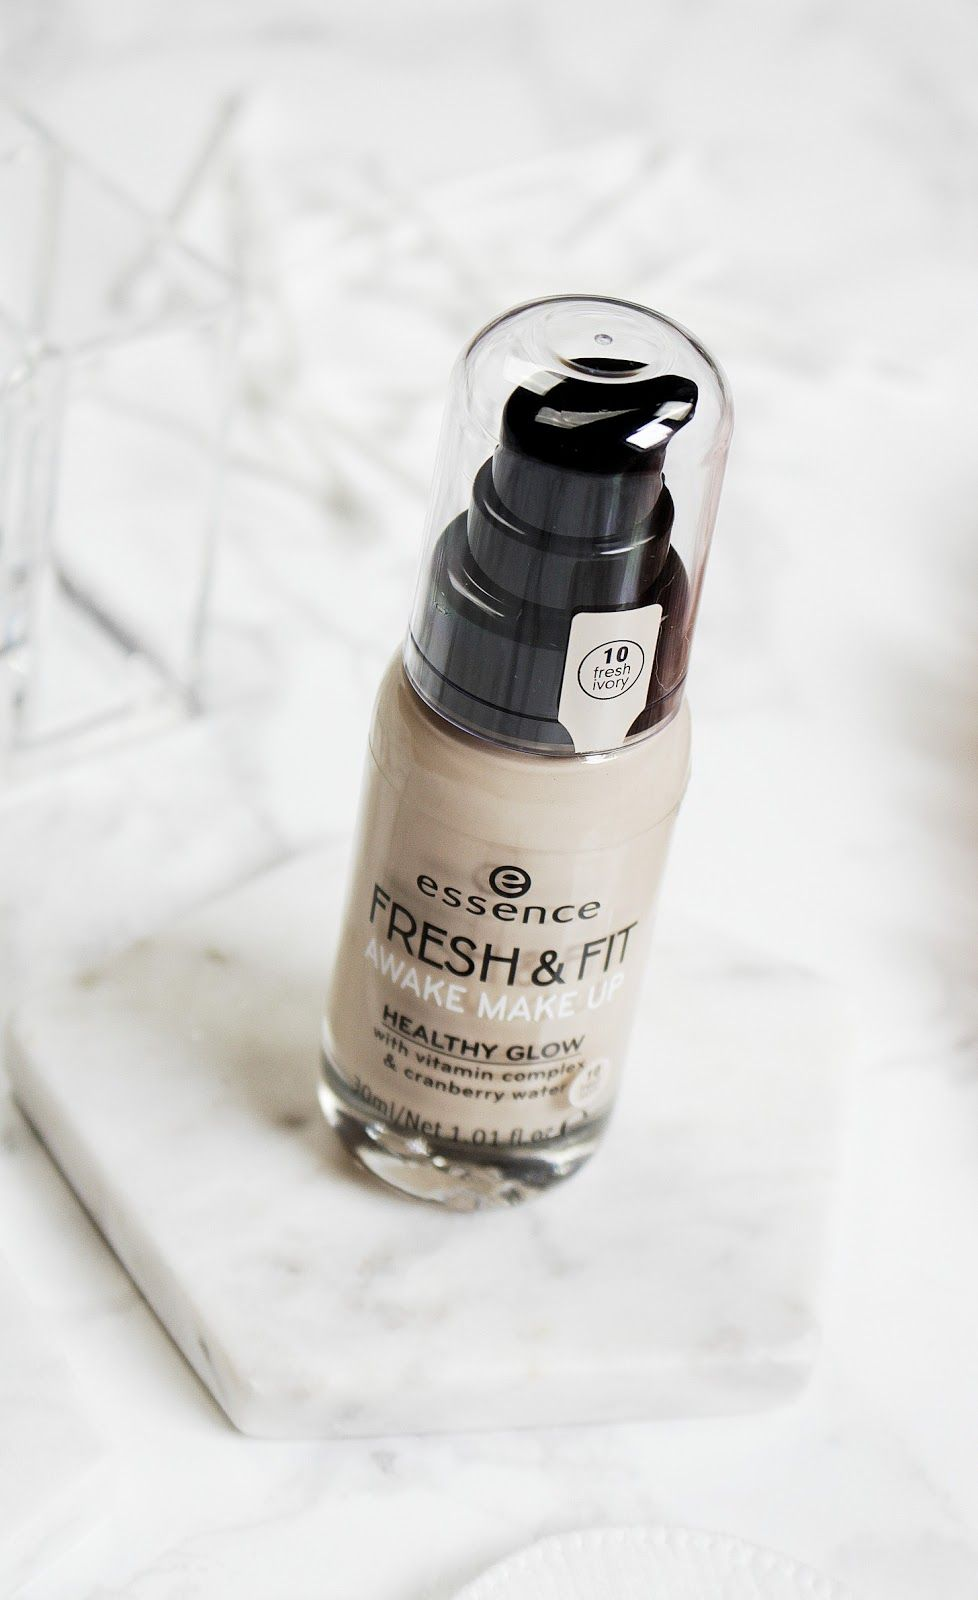 43a133fa8 NEW Essence Fresh & Fit Foundation Review - http://www.joliennathalie